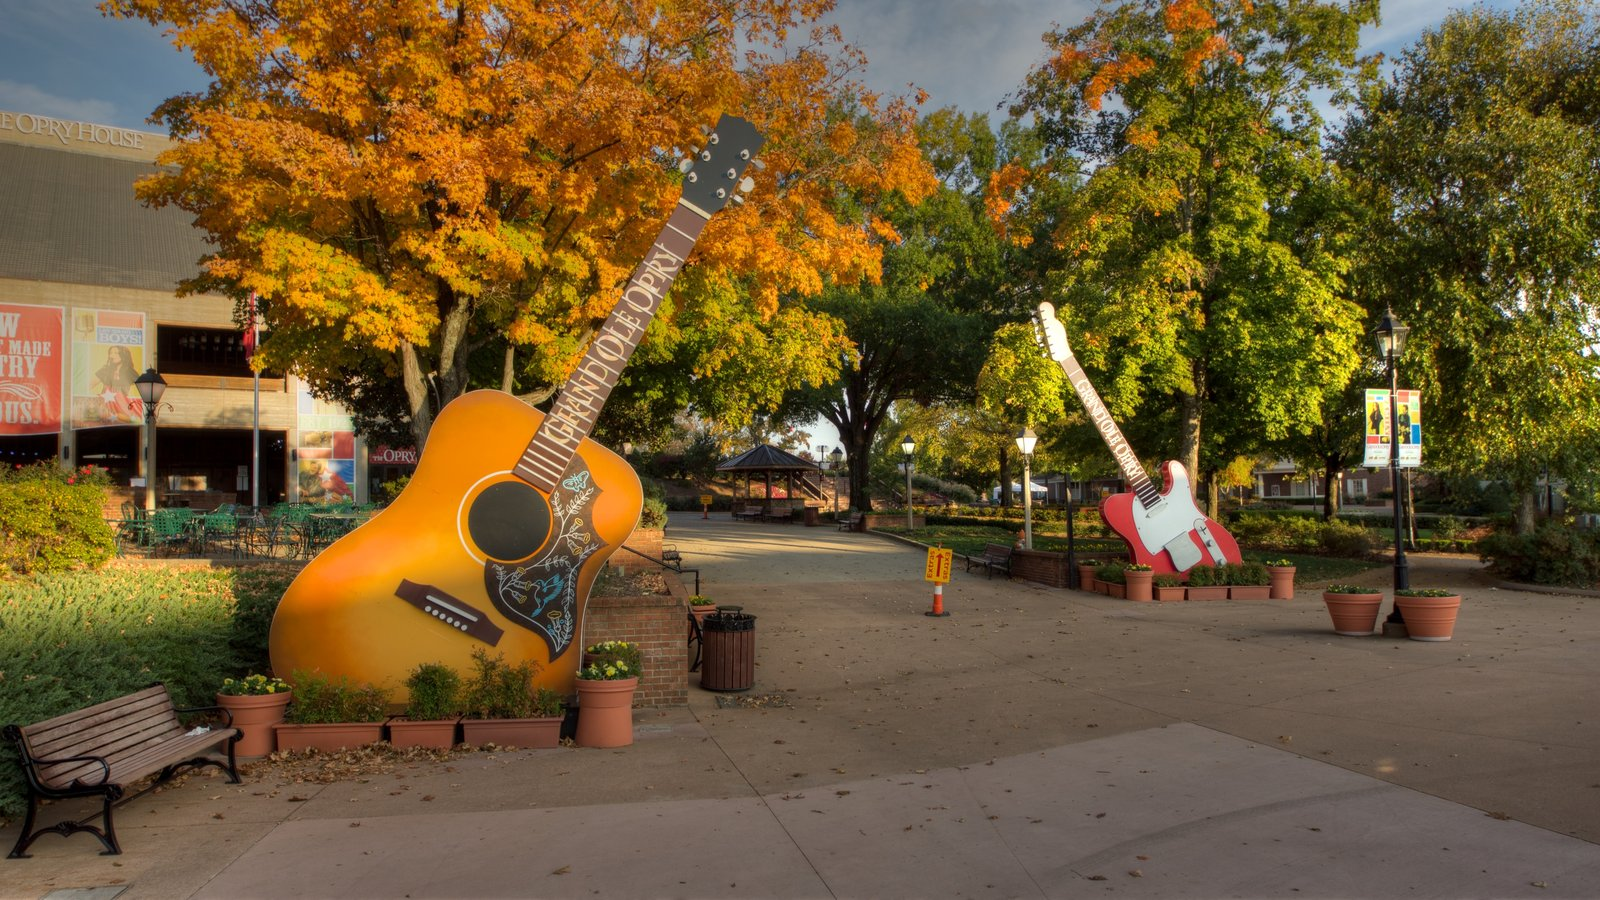 Grand Ole Opry which includes art and a garden